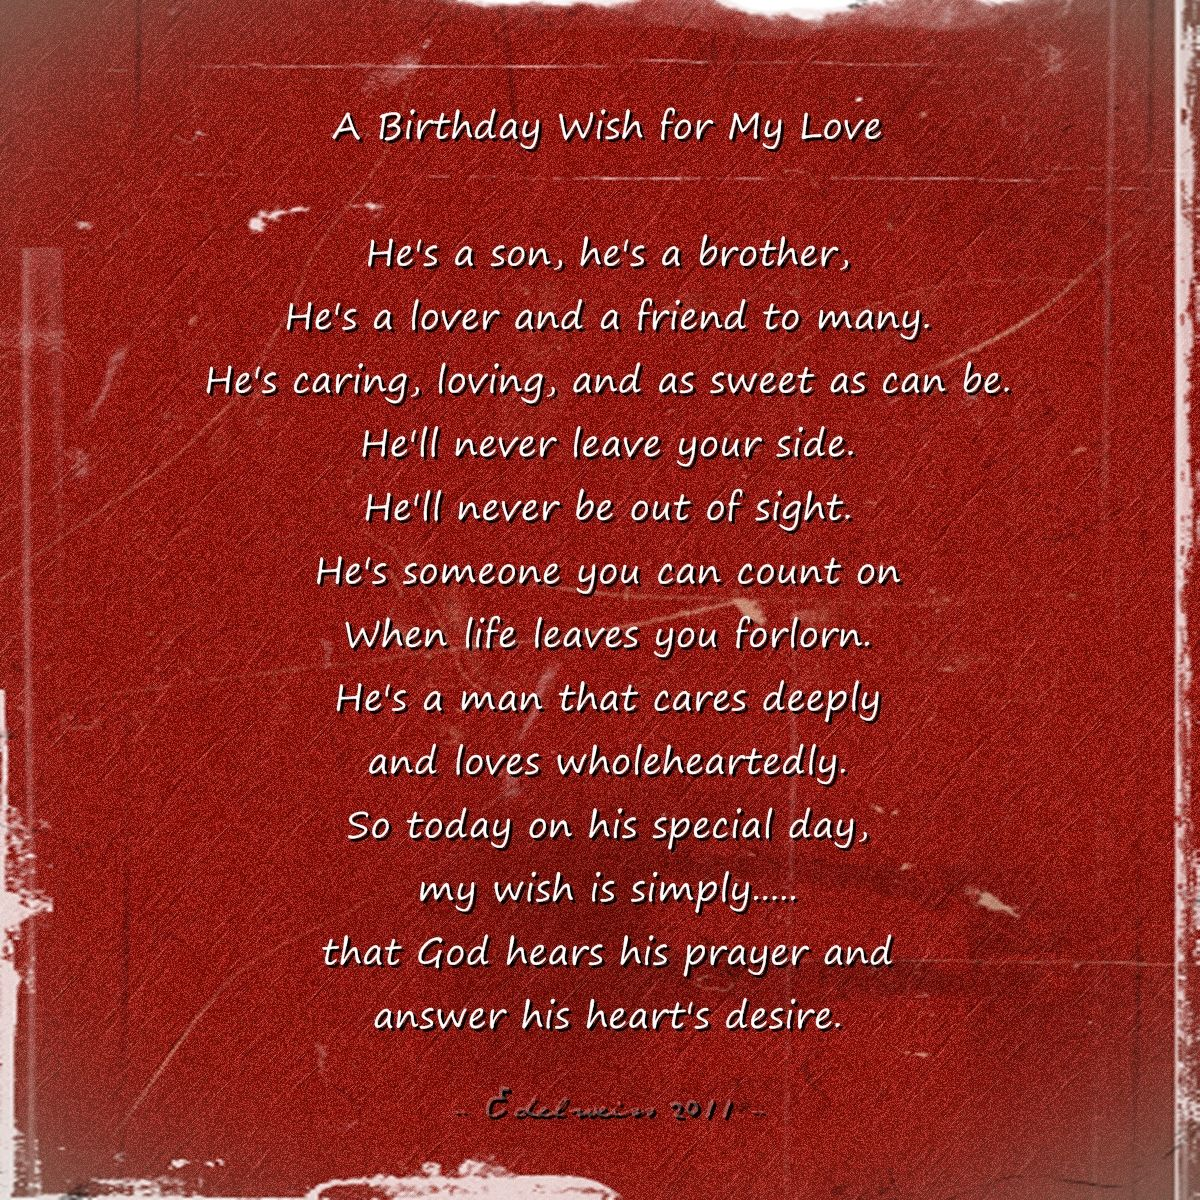 wish him happy birthday from my side ; a39e1303d5726a1387bd7e2f15309408